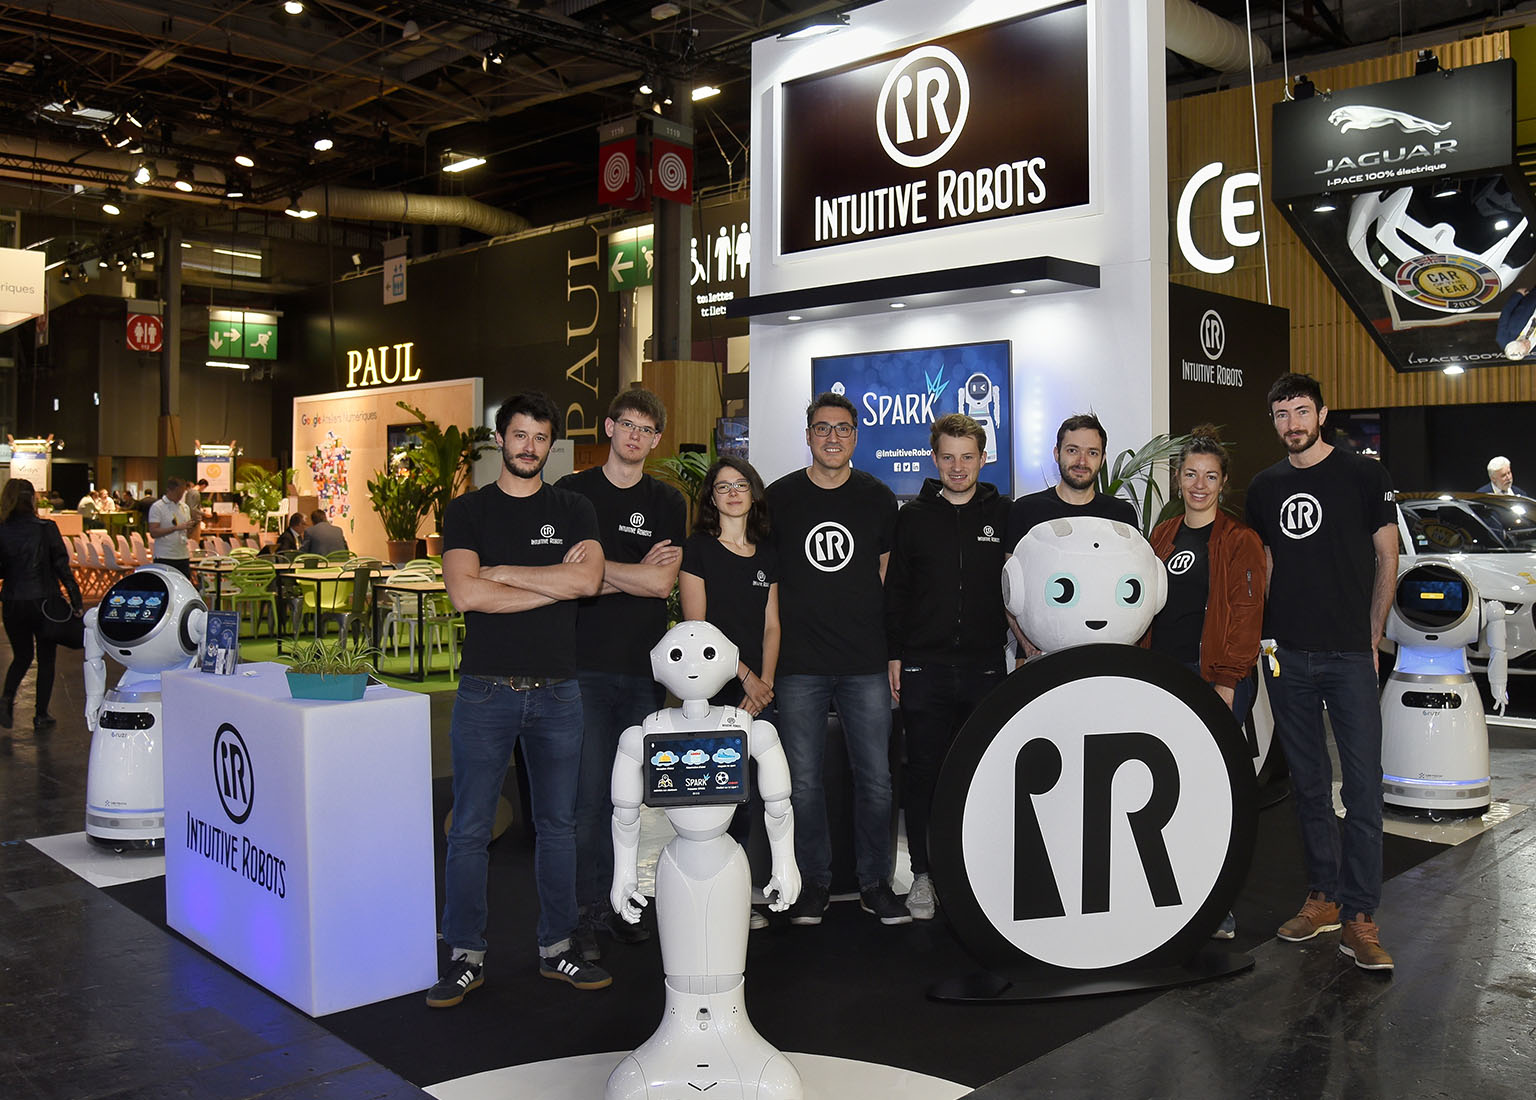 intuitive robots team vivatech